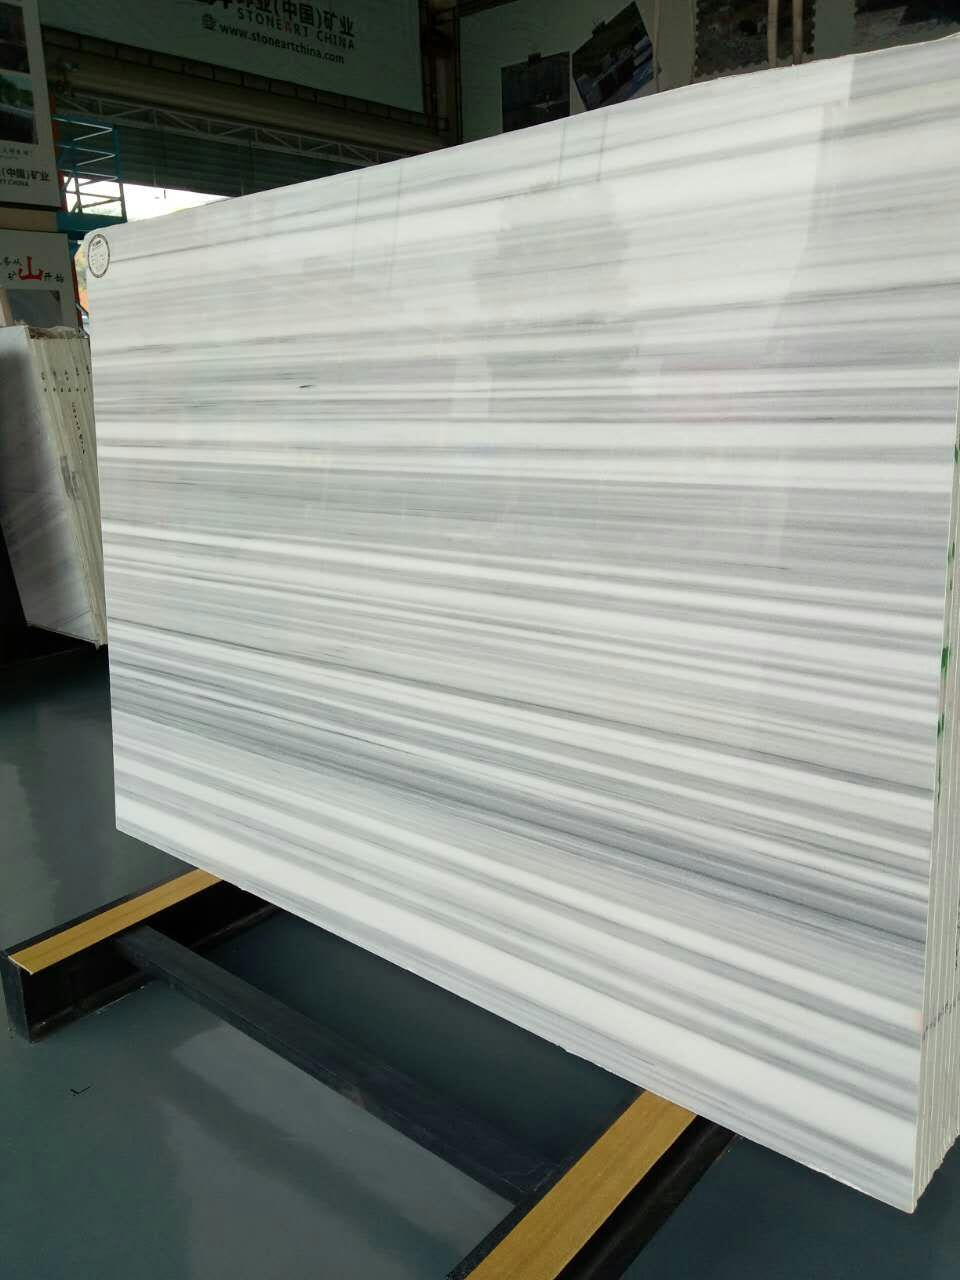 Marmala White Marble  Straight Texture  Origin Greece